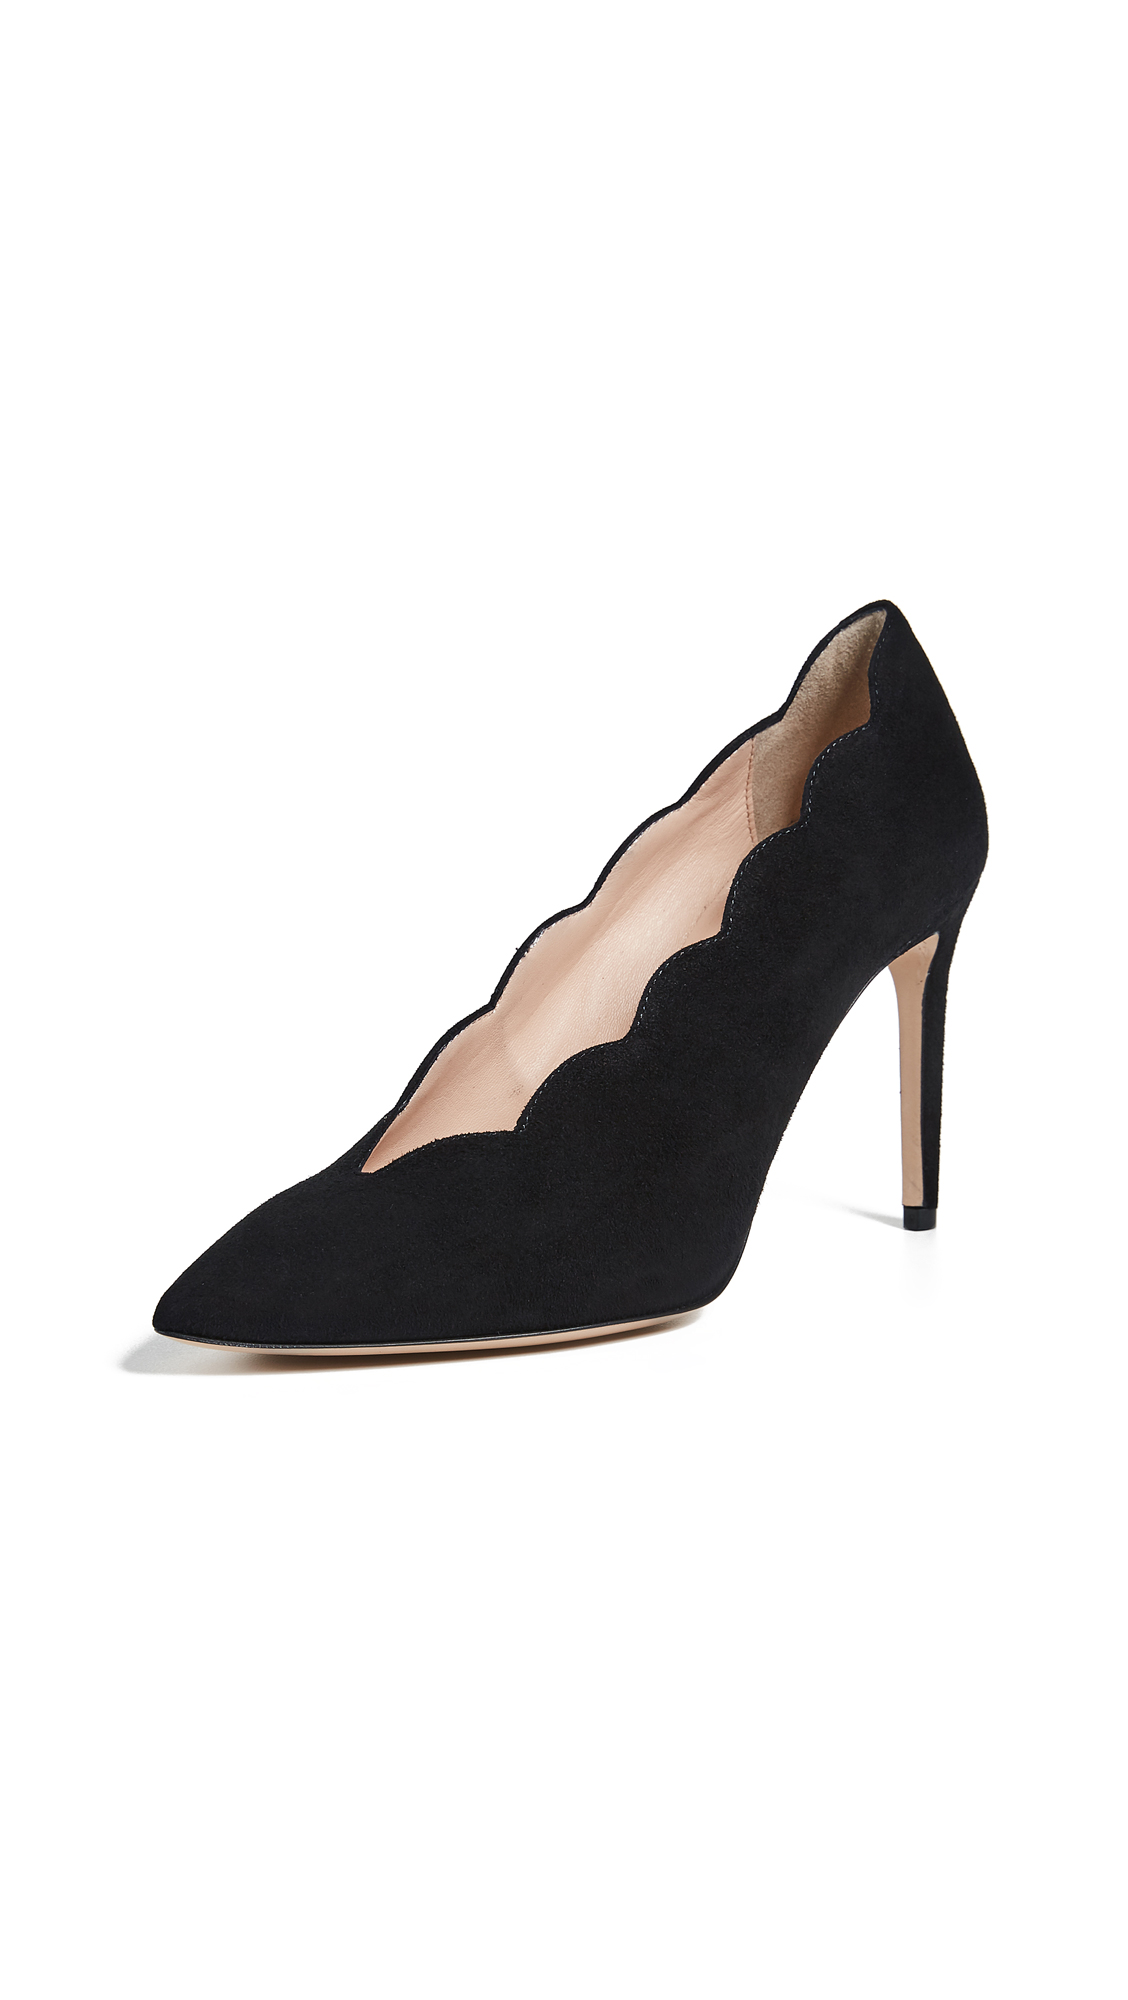 Club Monaco Kendally Pumps